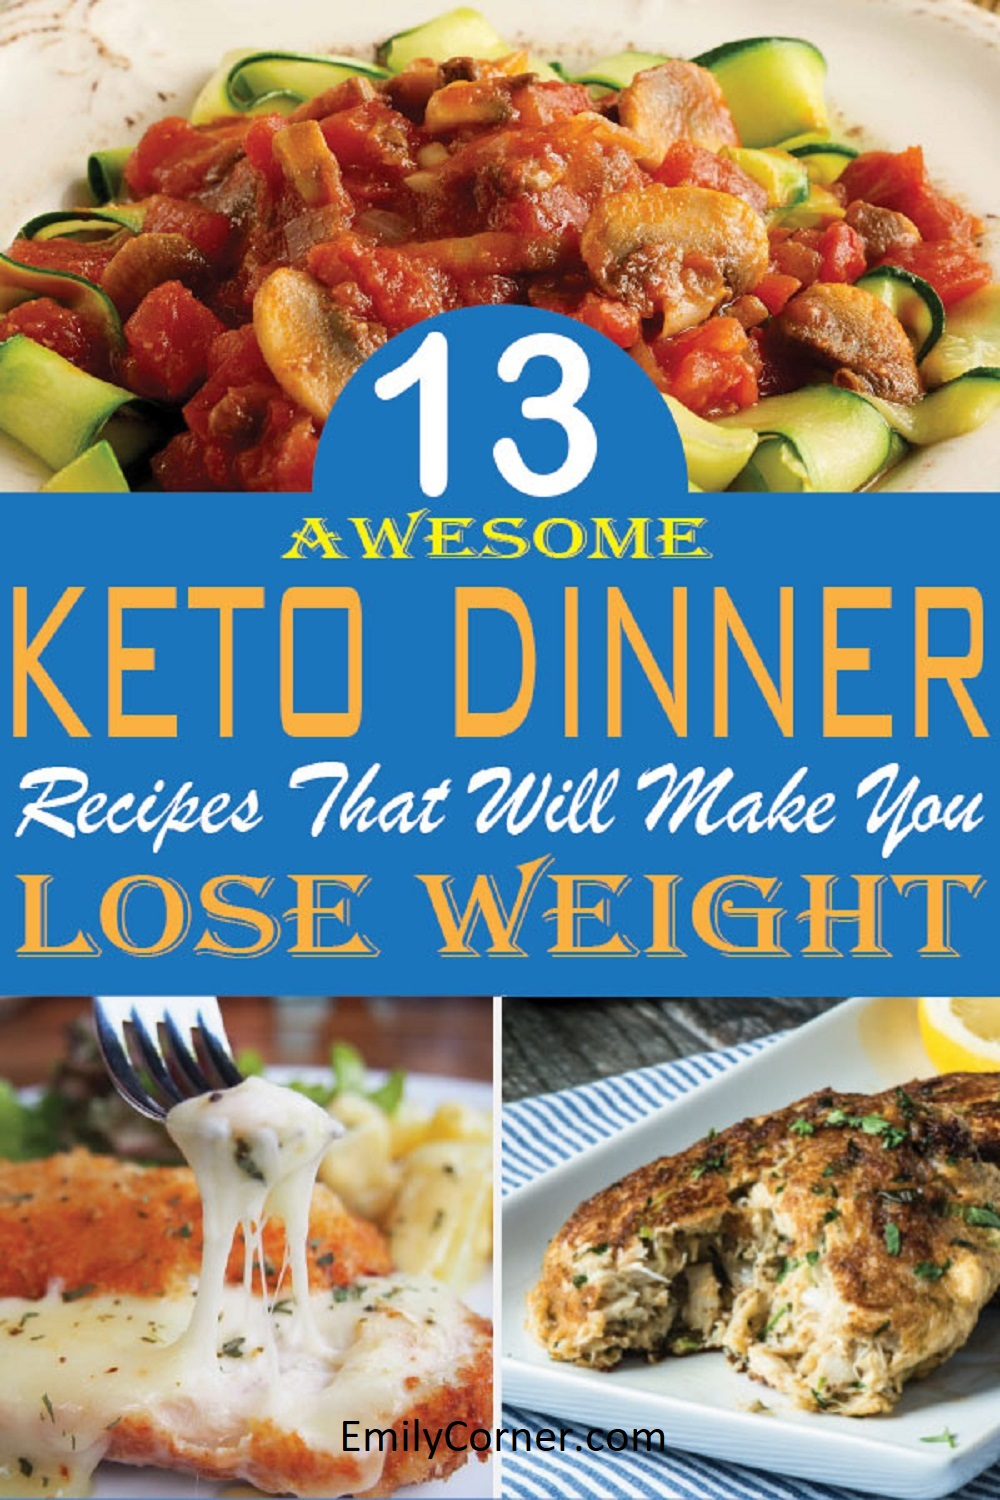 Keto dinner recipes